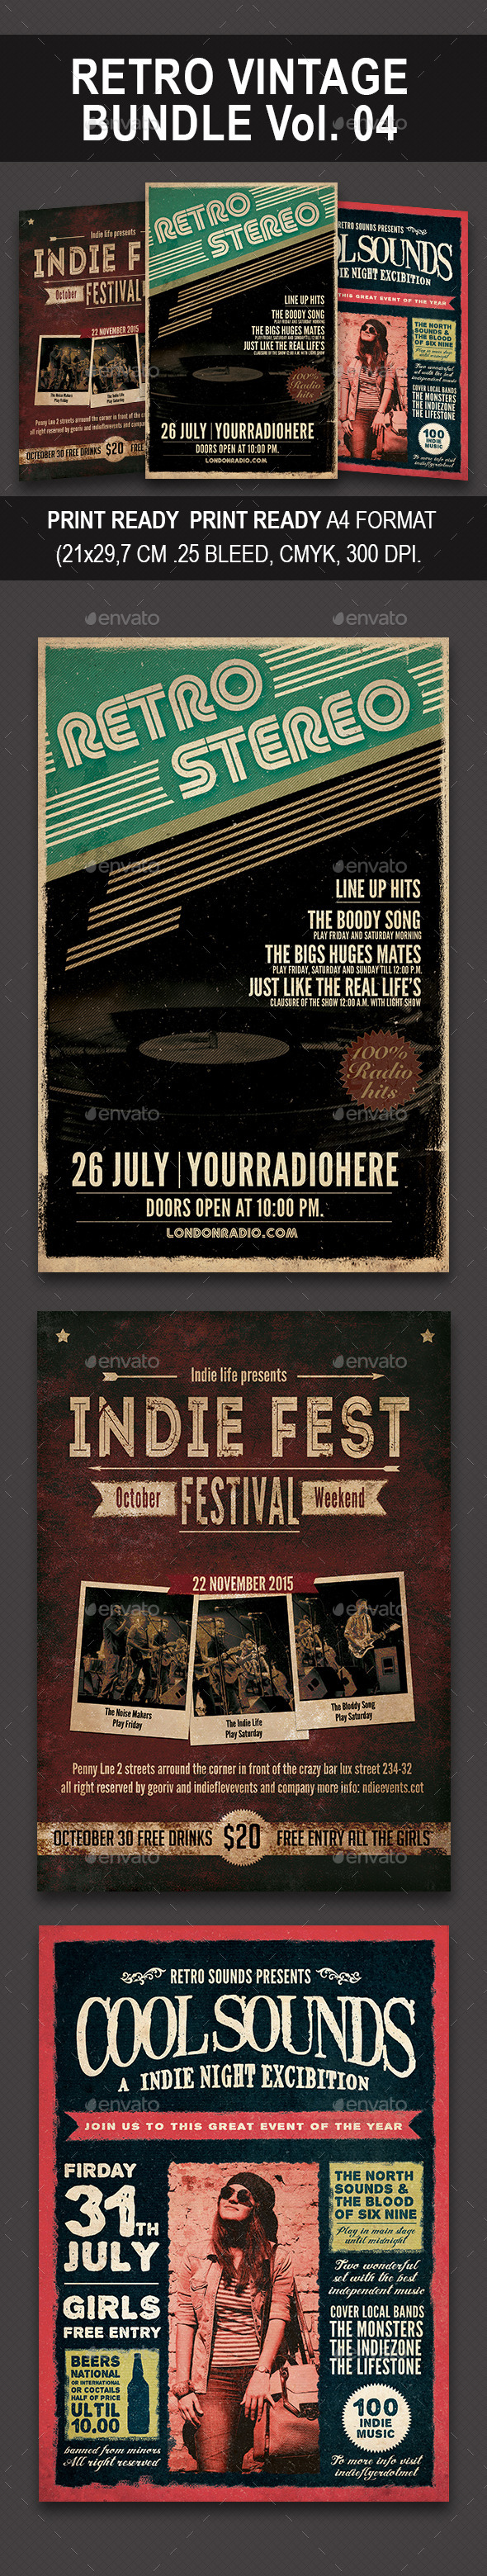 Retro Vintage Bundle 04 - Events Flyers